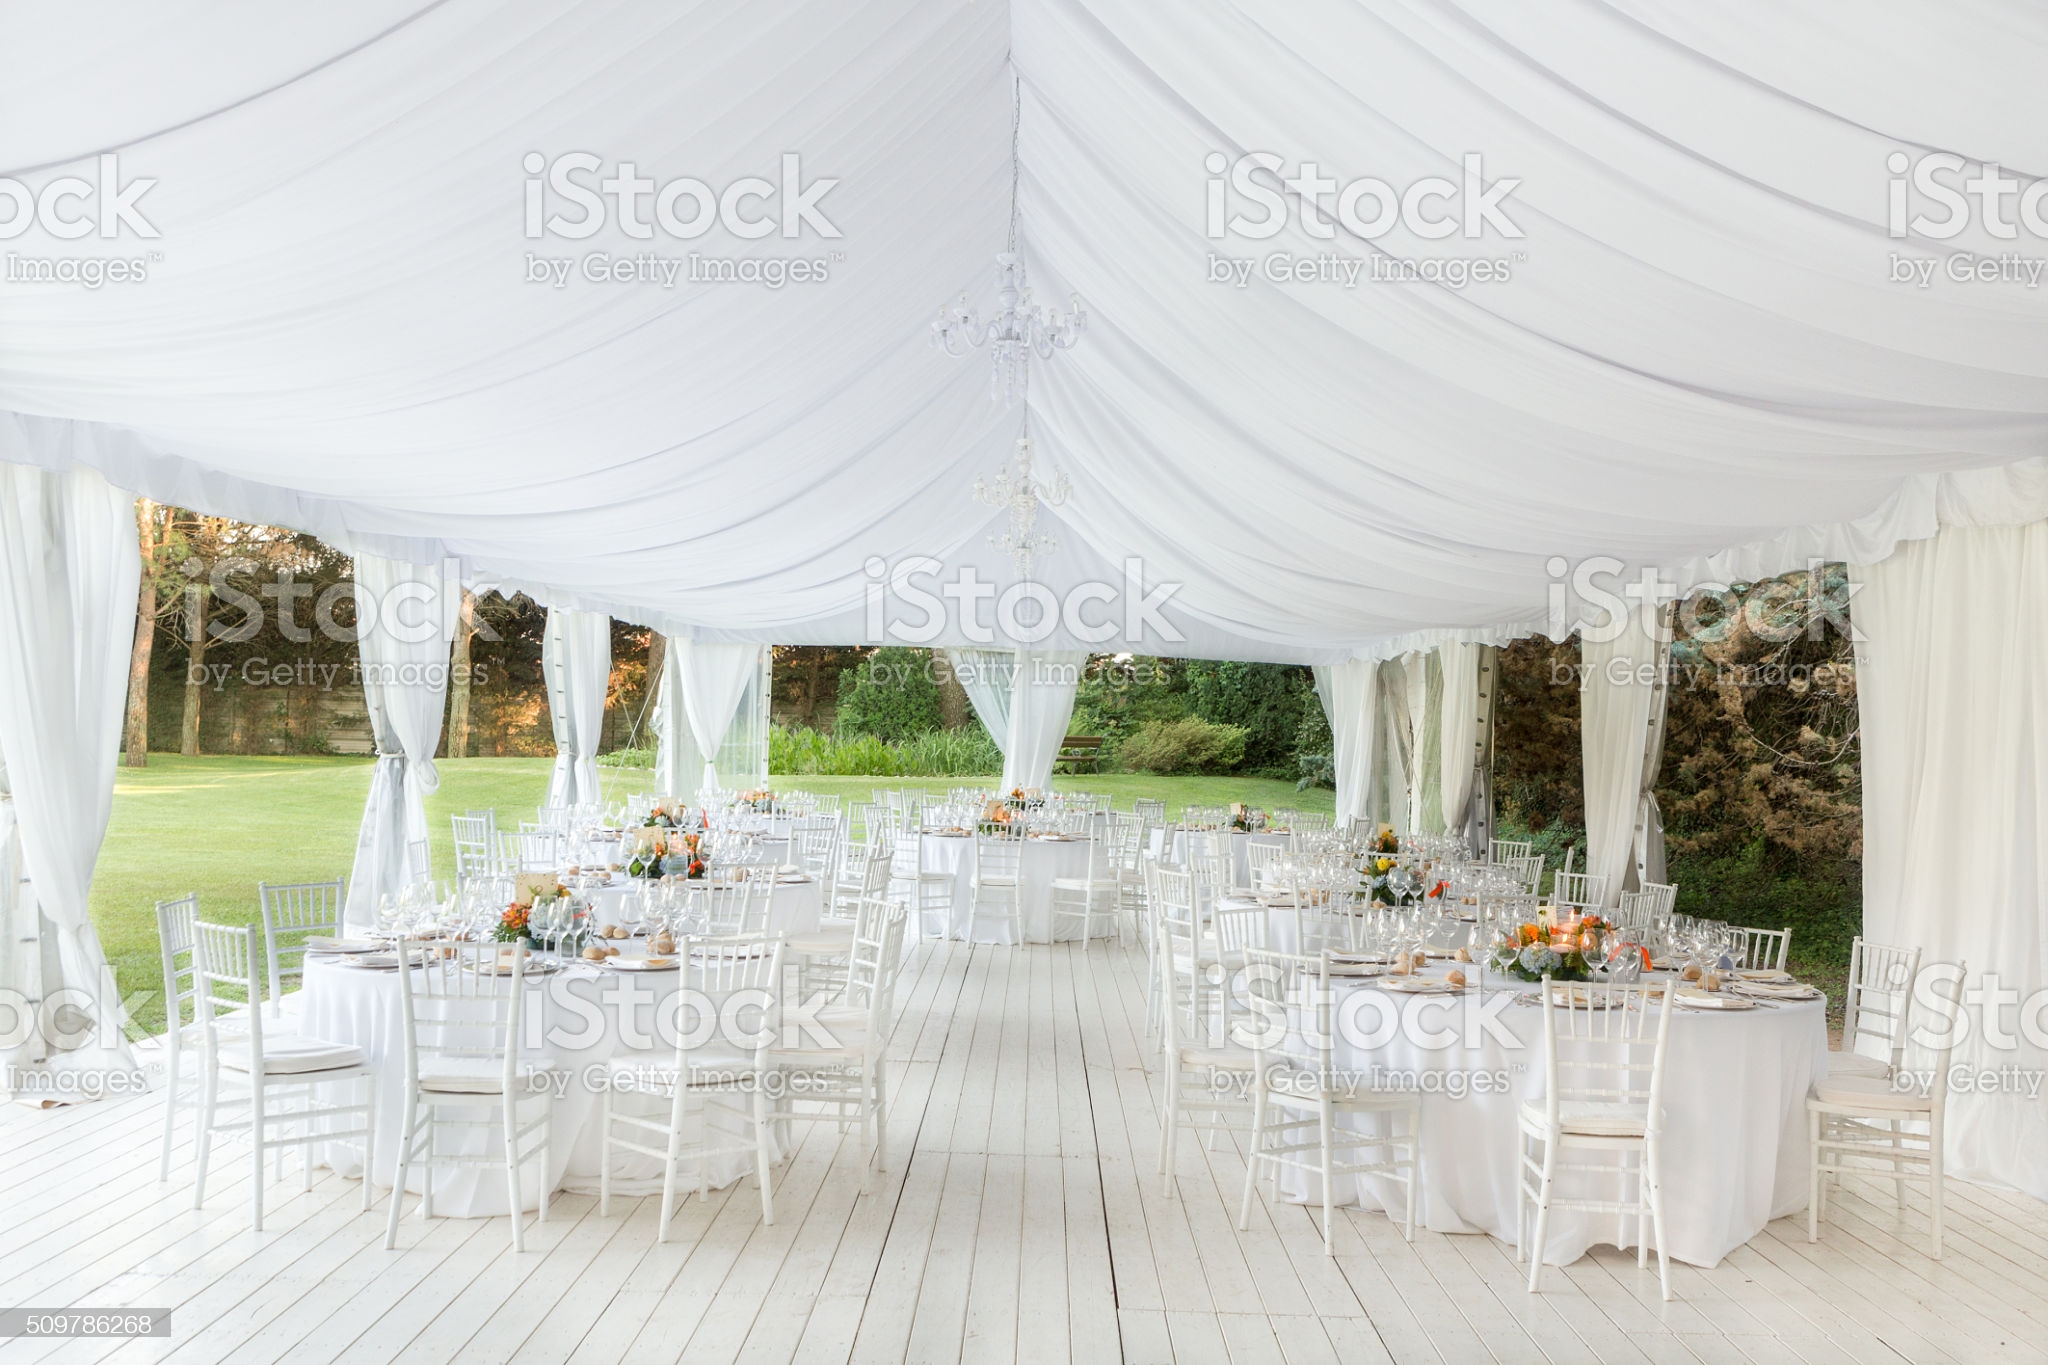 Marquee and canopy